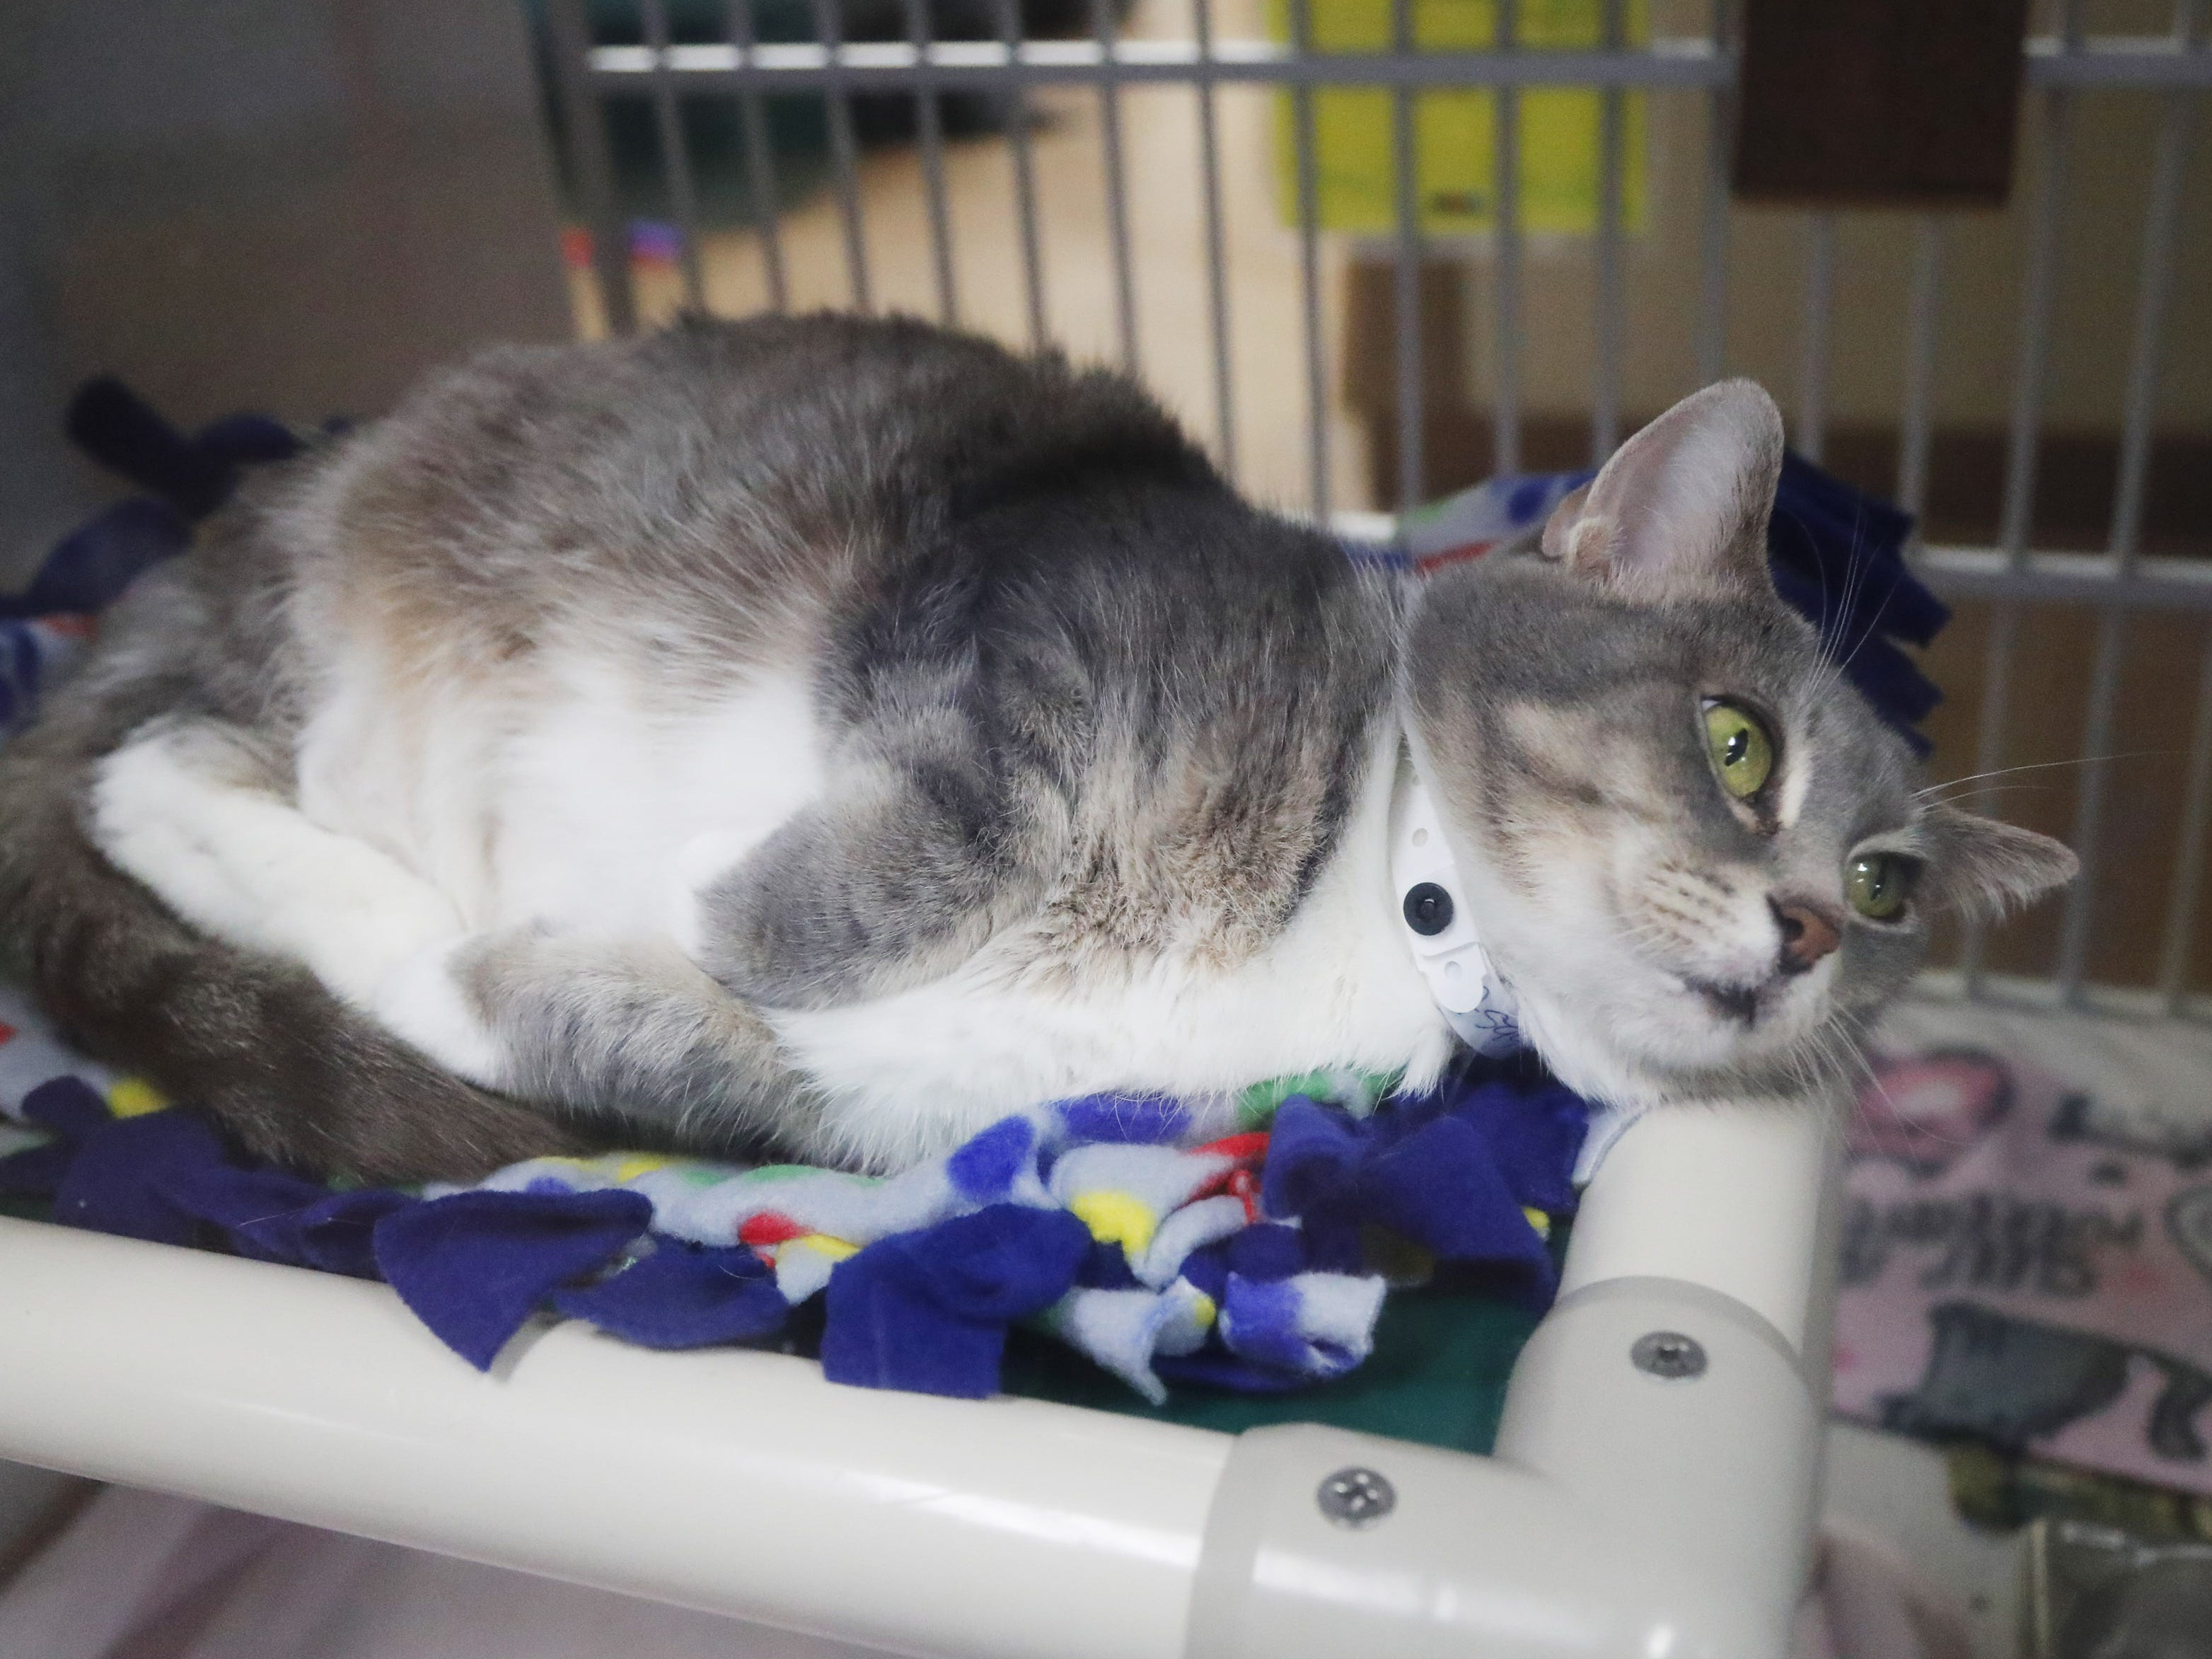 Mittens, a domestic shorthair, waits to be adopted at the Arizona Humane Society in Phoenix on April 1, 2019. More than 8,000 dogs and cats have been surrendered in Maricopa County since the start of the year.